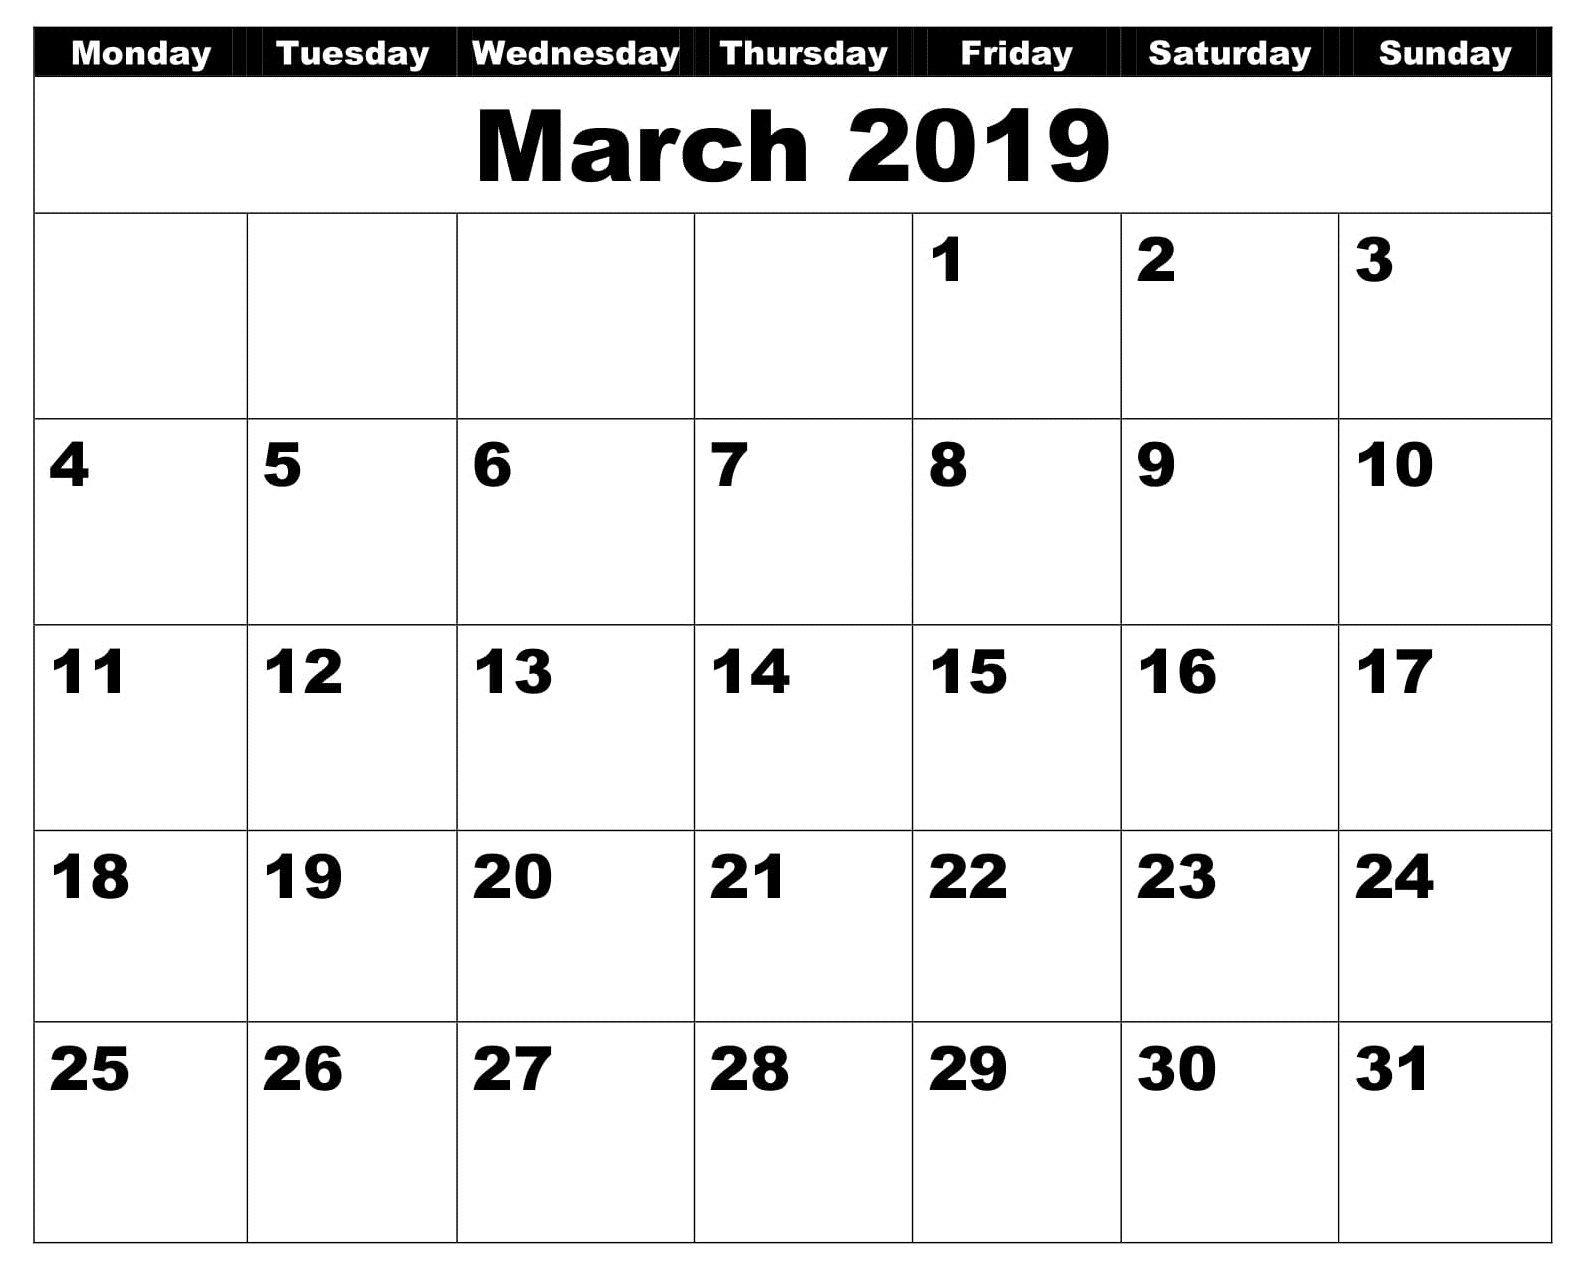 Blank March 2019 Calendar Business | 2019 Calendar Blank Sunday Through Saturday Calendar